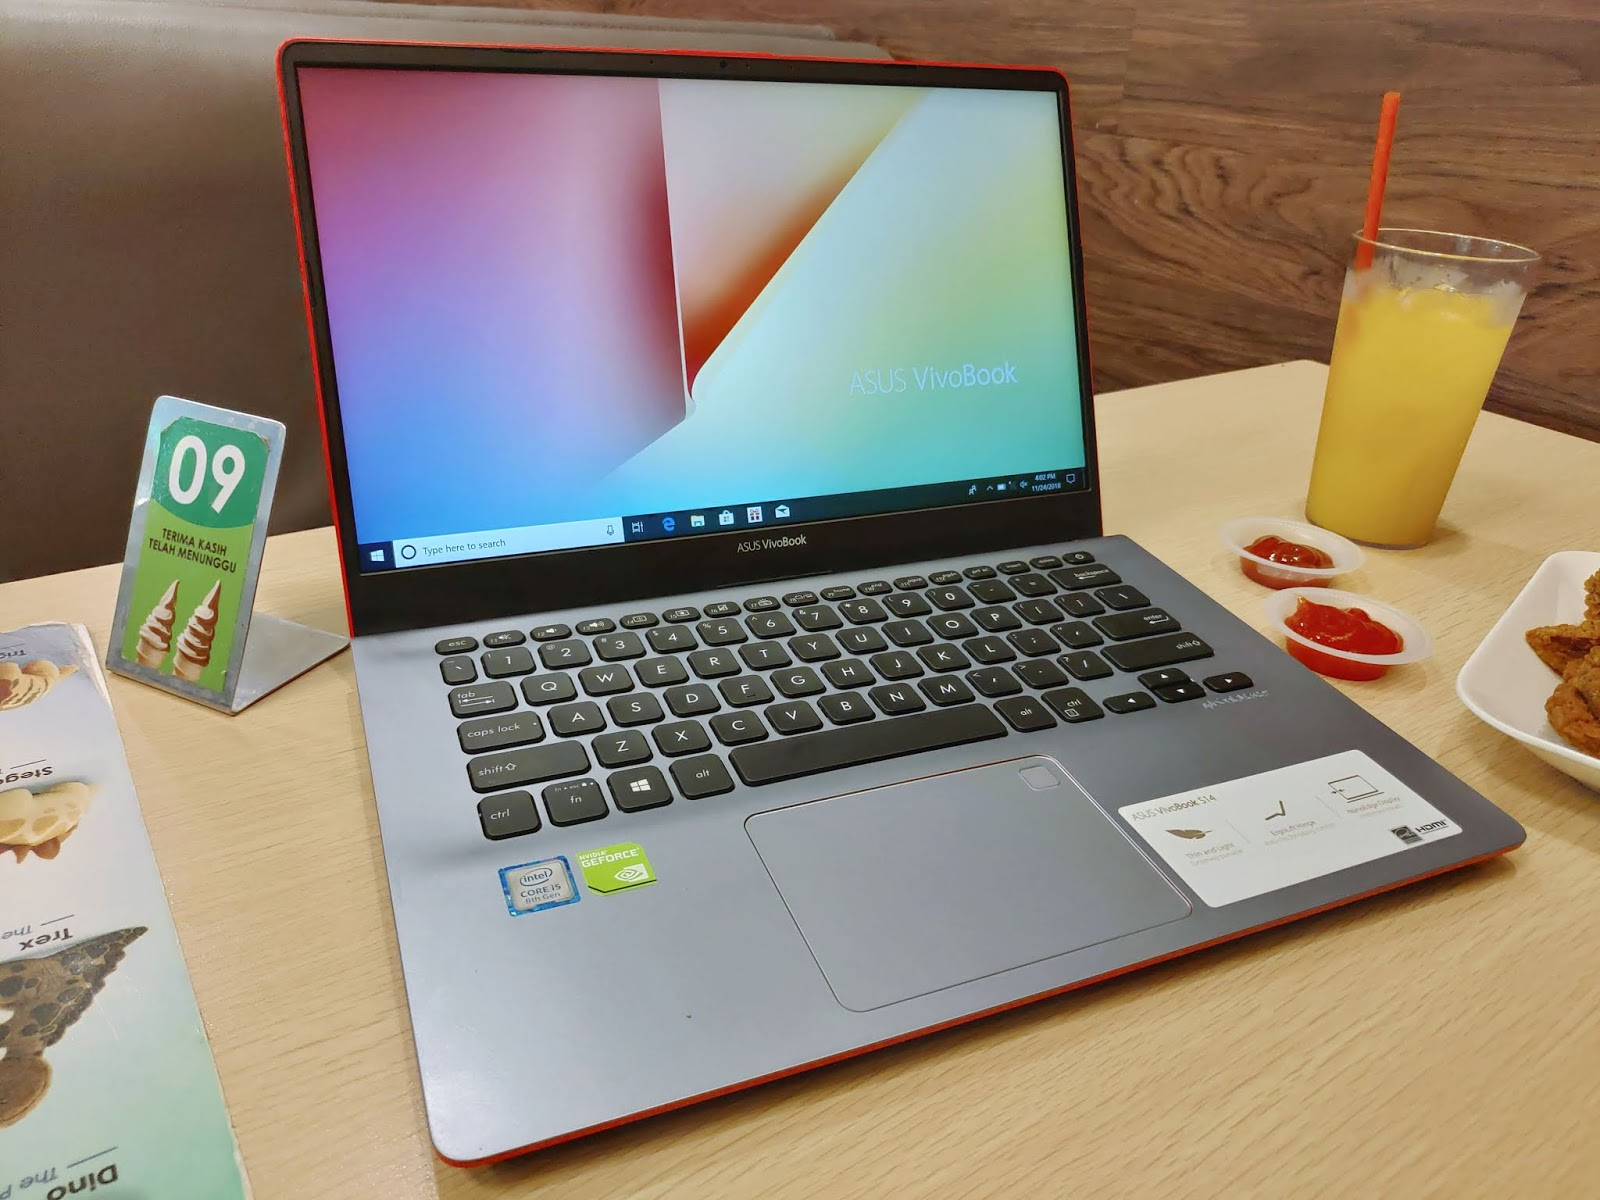 TeknoReview : Review Asus VivoBook S430, Performa Kenceng